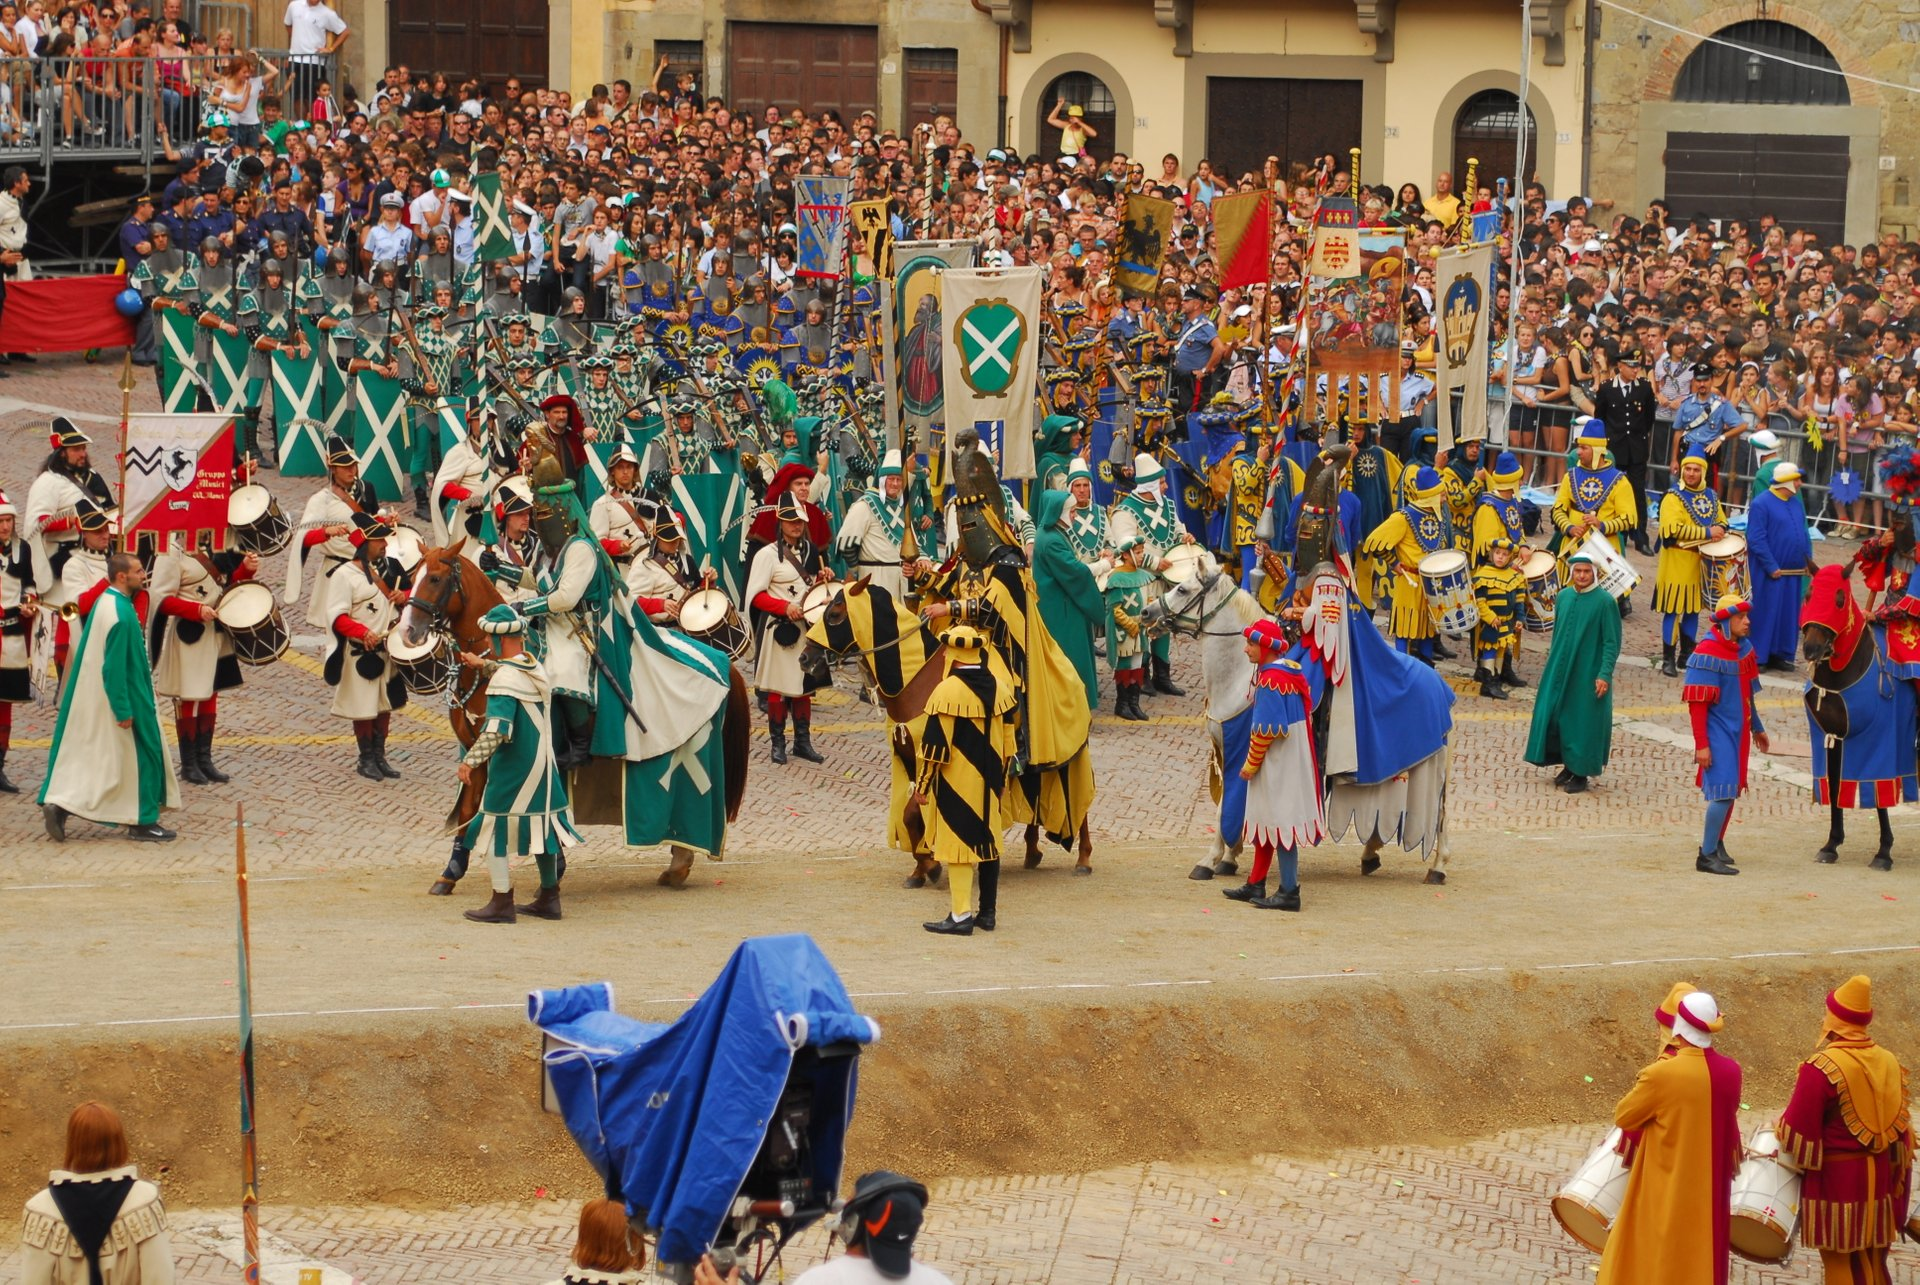 Giostra del Saracino (Joust of the Saracens) in Tuscany - Best Season 2020